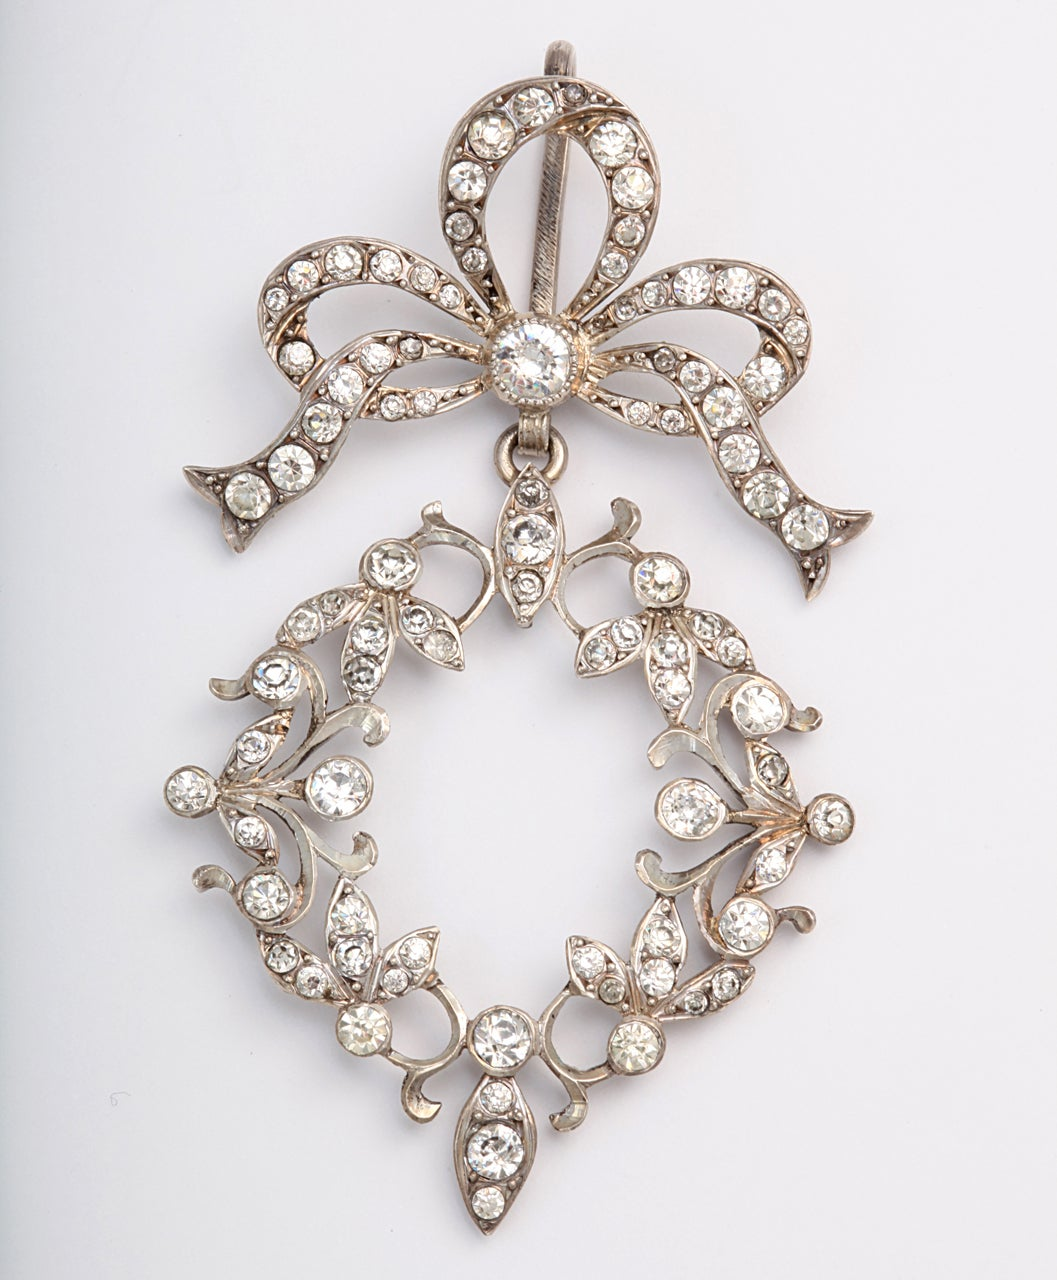 A beautifully decorative French pendant that is delightfully feminine on the neck. and an unique piece of Art Nouveau jewelry.  This pendant was a treasure to find and will be a prize piece of jewelry for a woman to wear. French paste of the period